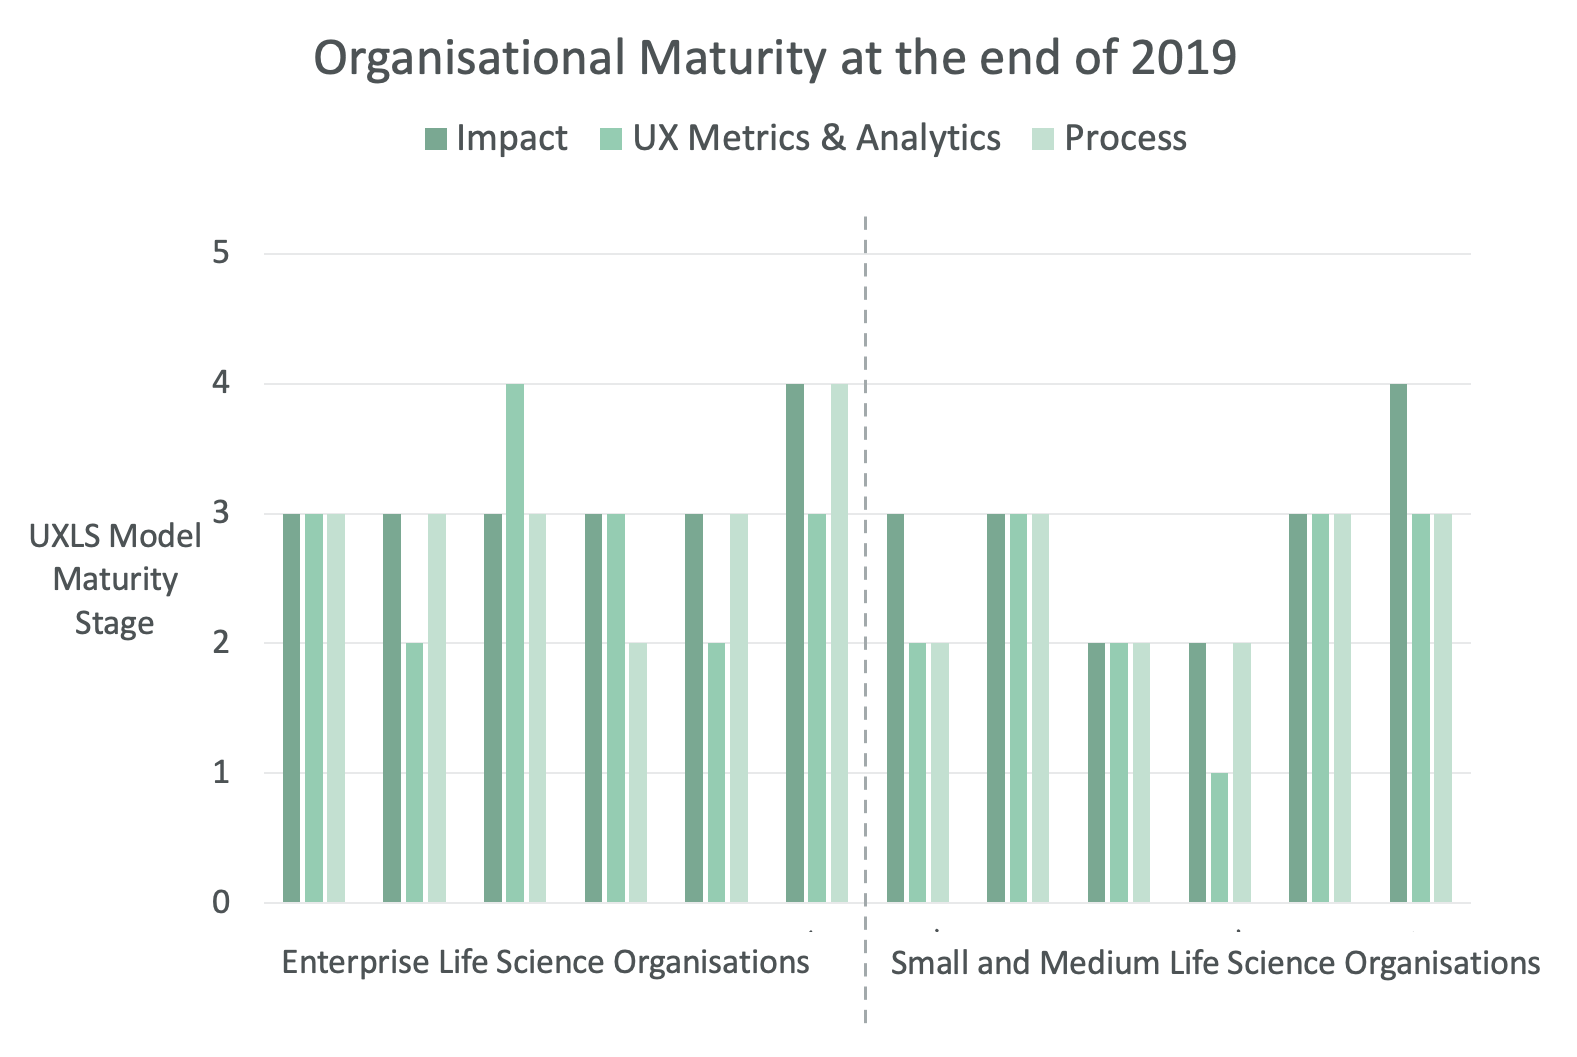 Maturity measured in January 2020 for 12 biopharmaceutical, agri-food, academia and industry-associated software vendors, using the in-house developed UXLS maturity model across the dimensions of Impact, Process and UX Metrics and Analytics.